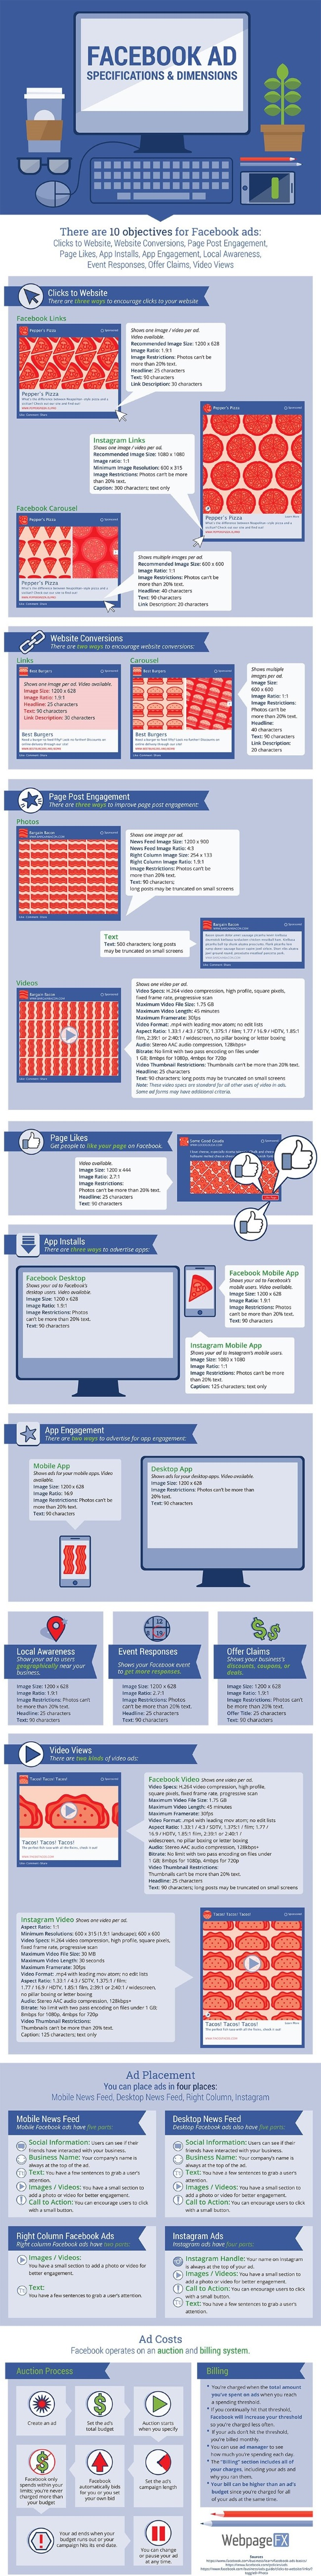 facebook-ad-anatomy-infographic.jpg